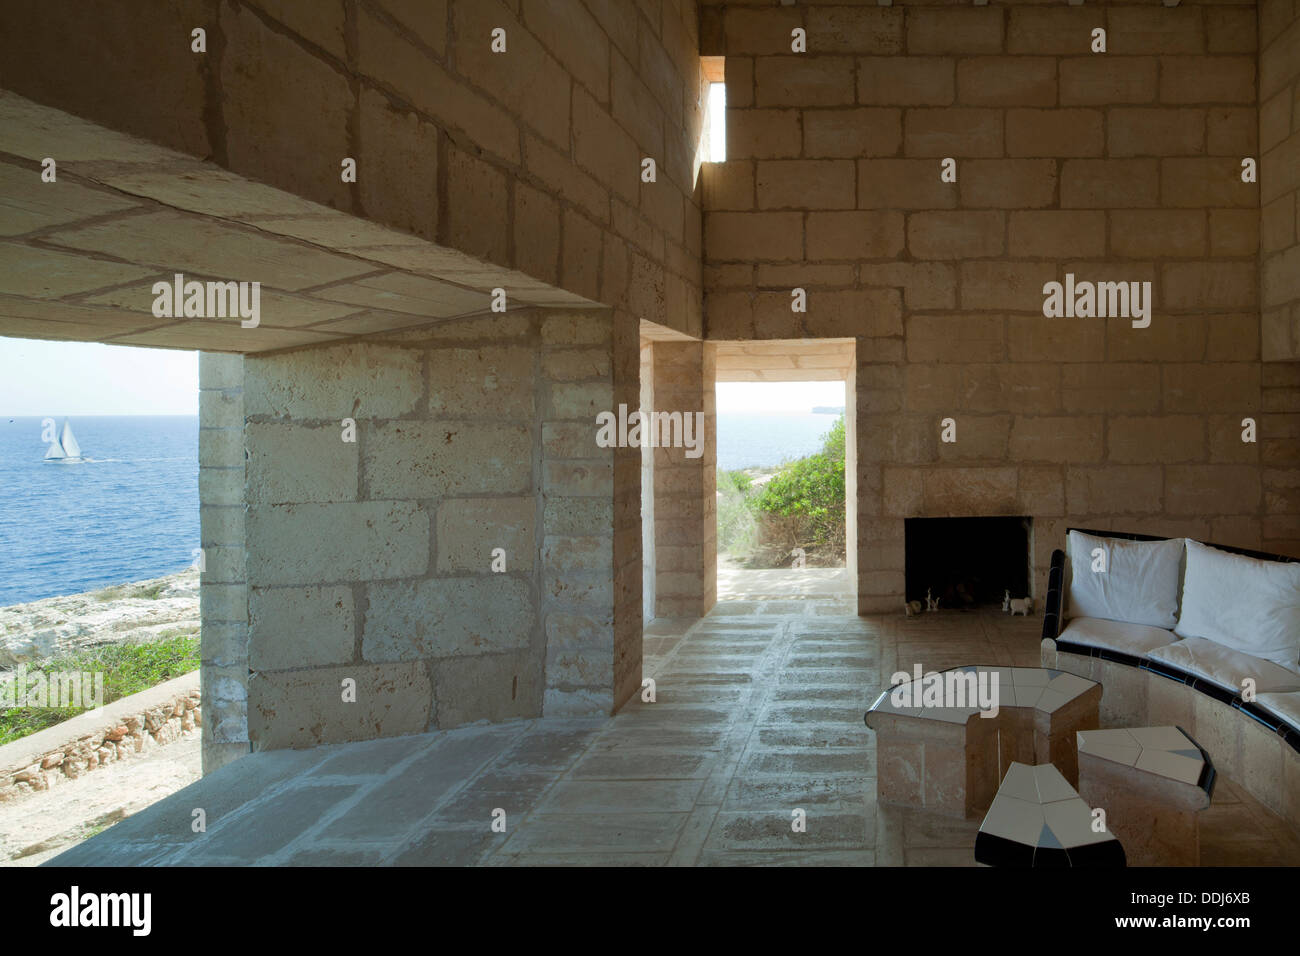 Can Lis, Mallorca, Spain. Architect: Utzon, Jorn, 1971. Living Room with